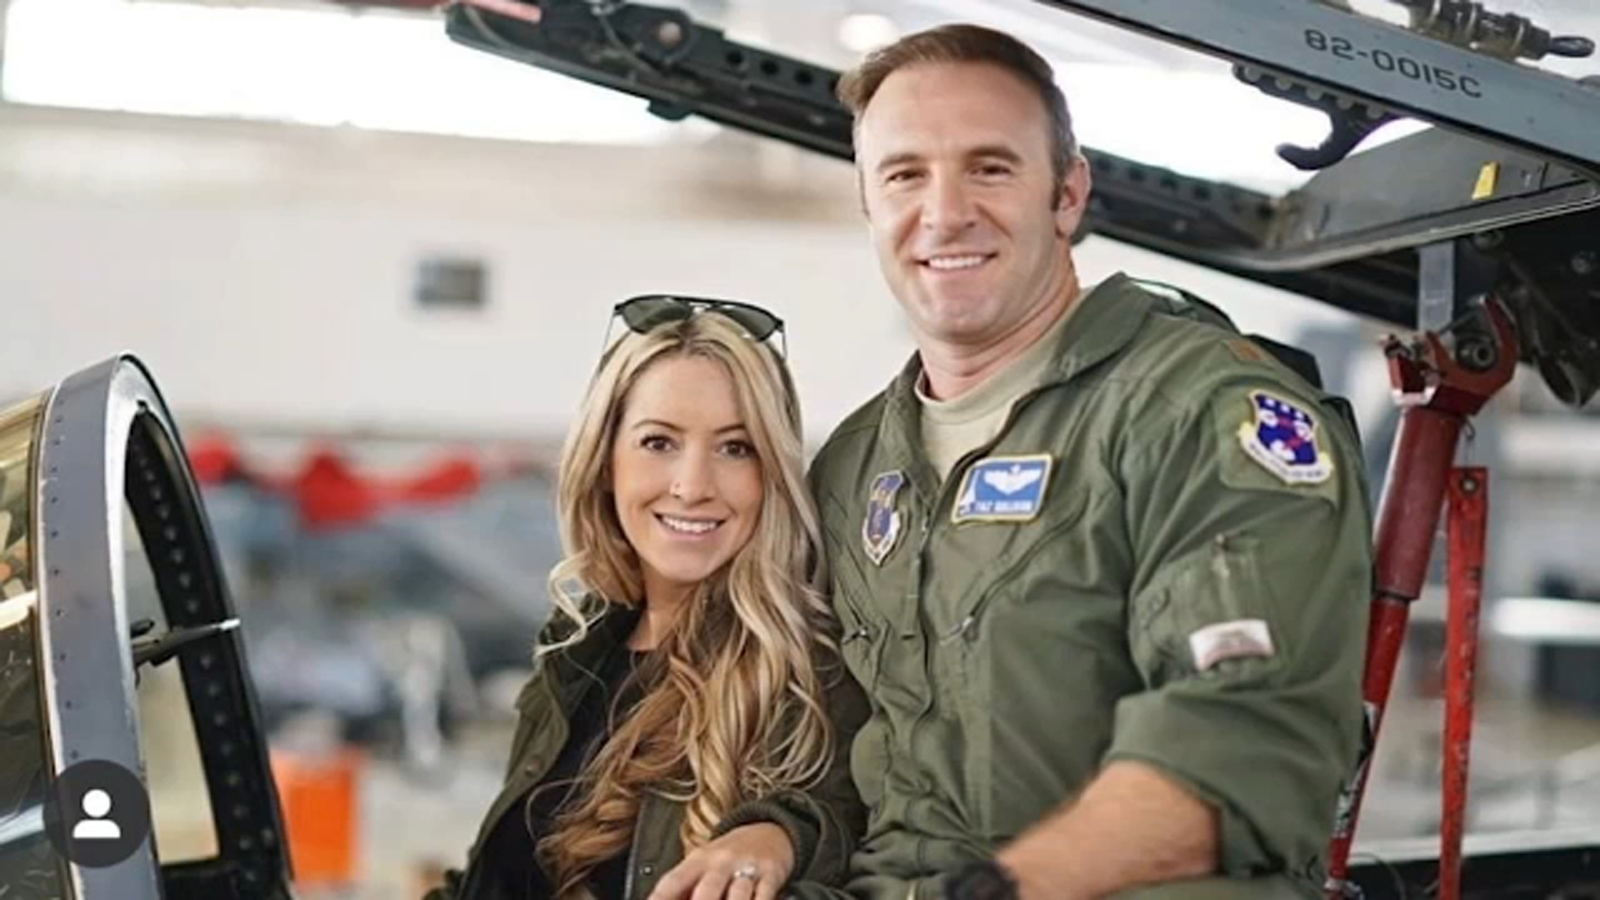 Pilot's widow graduates fire academy, squadron attends ceremony to show support